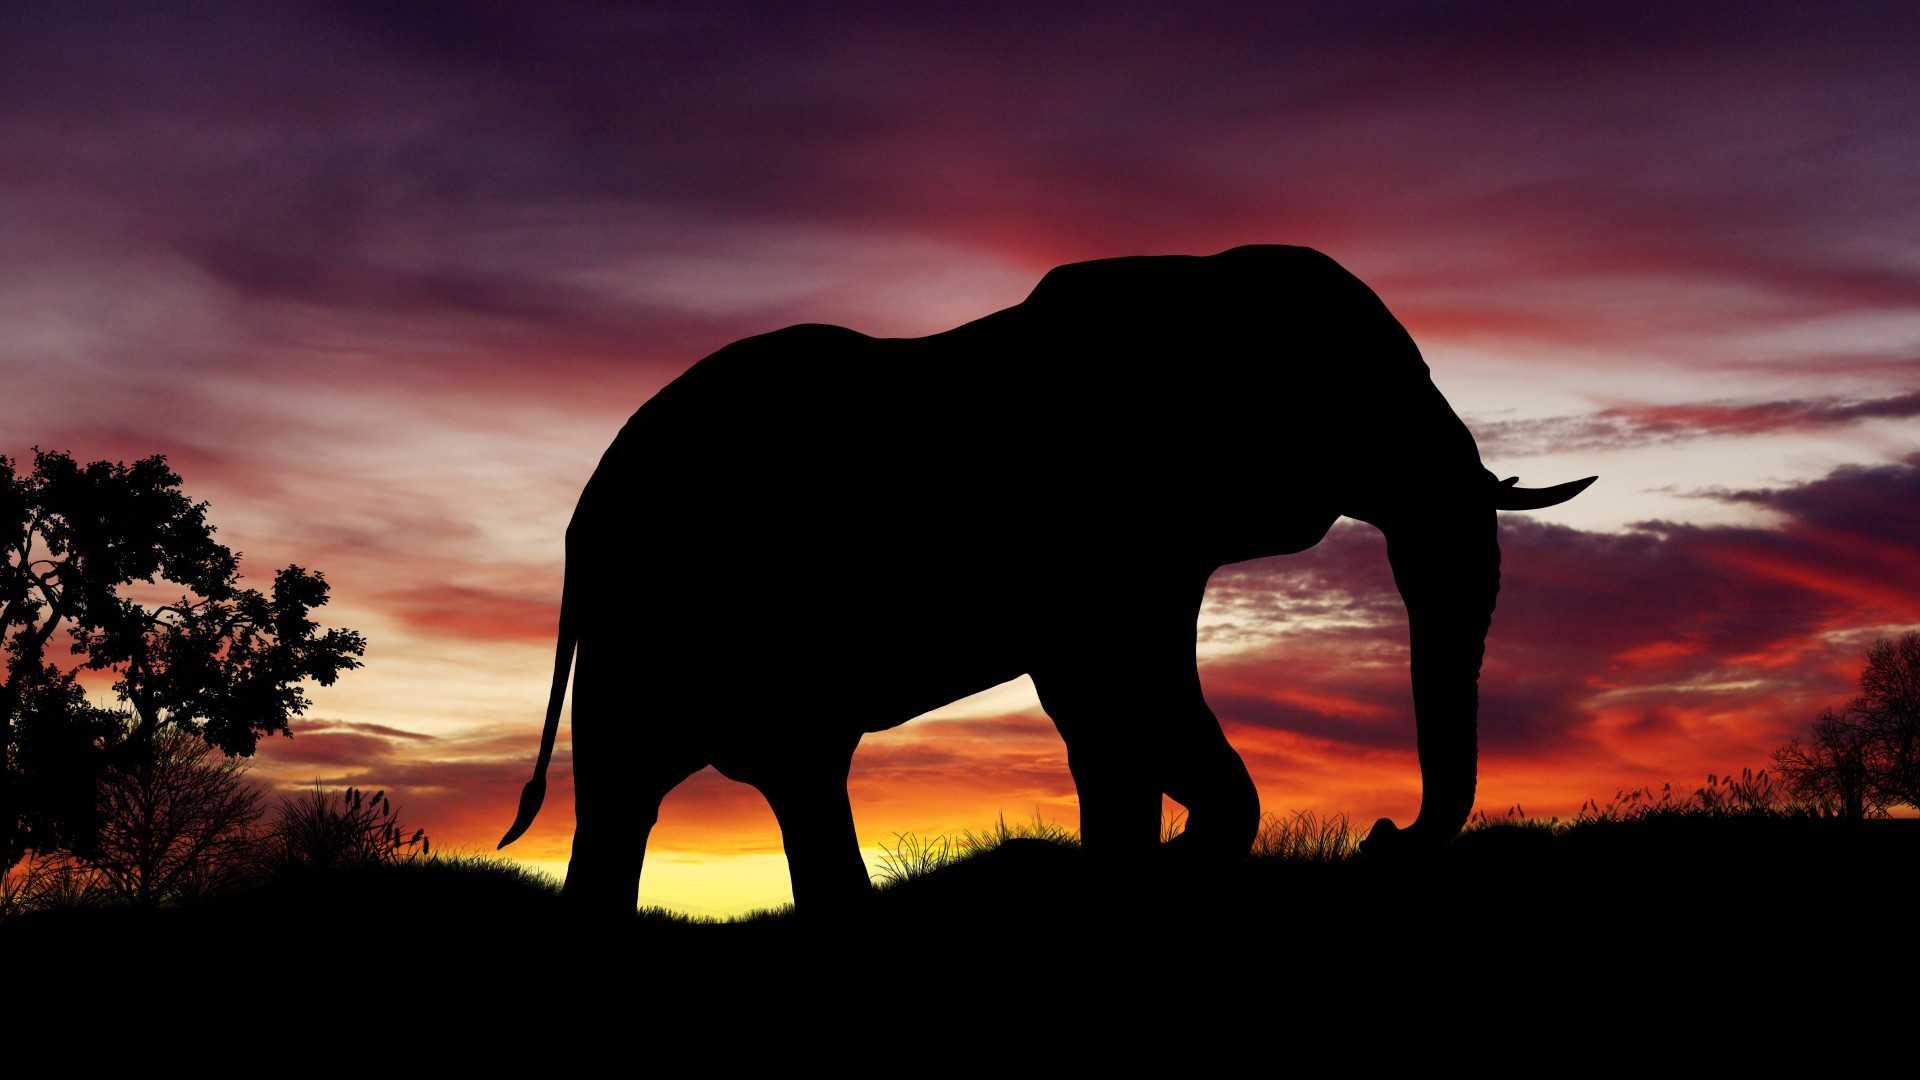 Elephant silhouette | 1920x1080 wallpaper